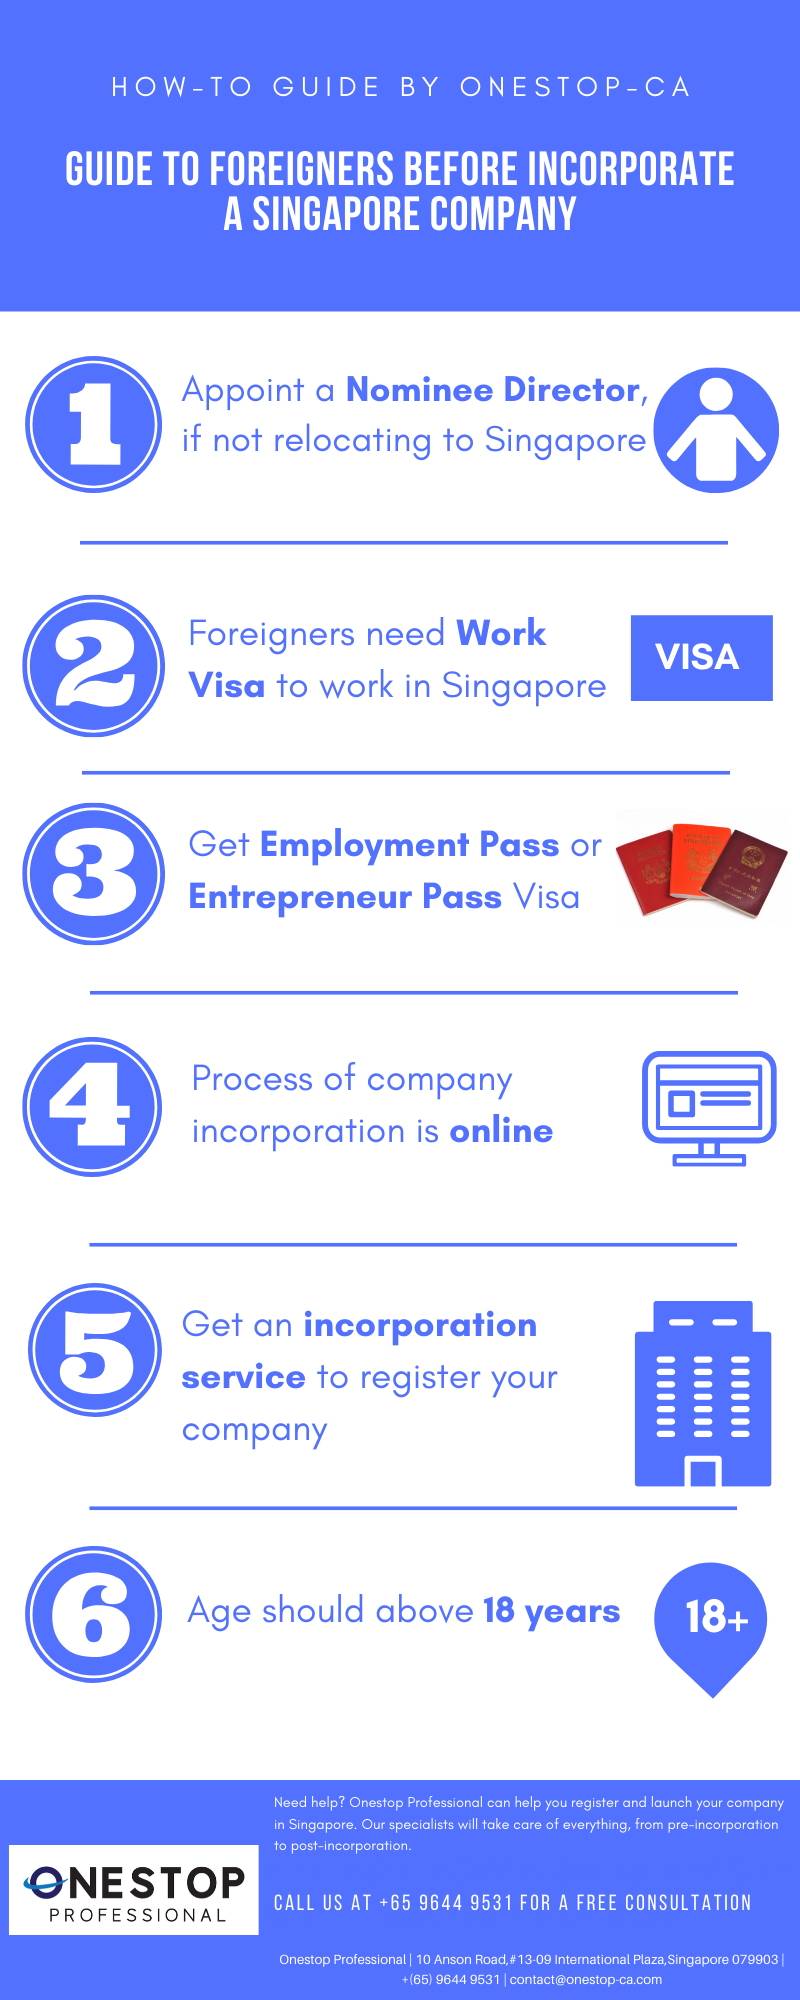 How to guide for foreigners in setting up a company in Singapore